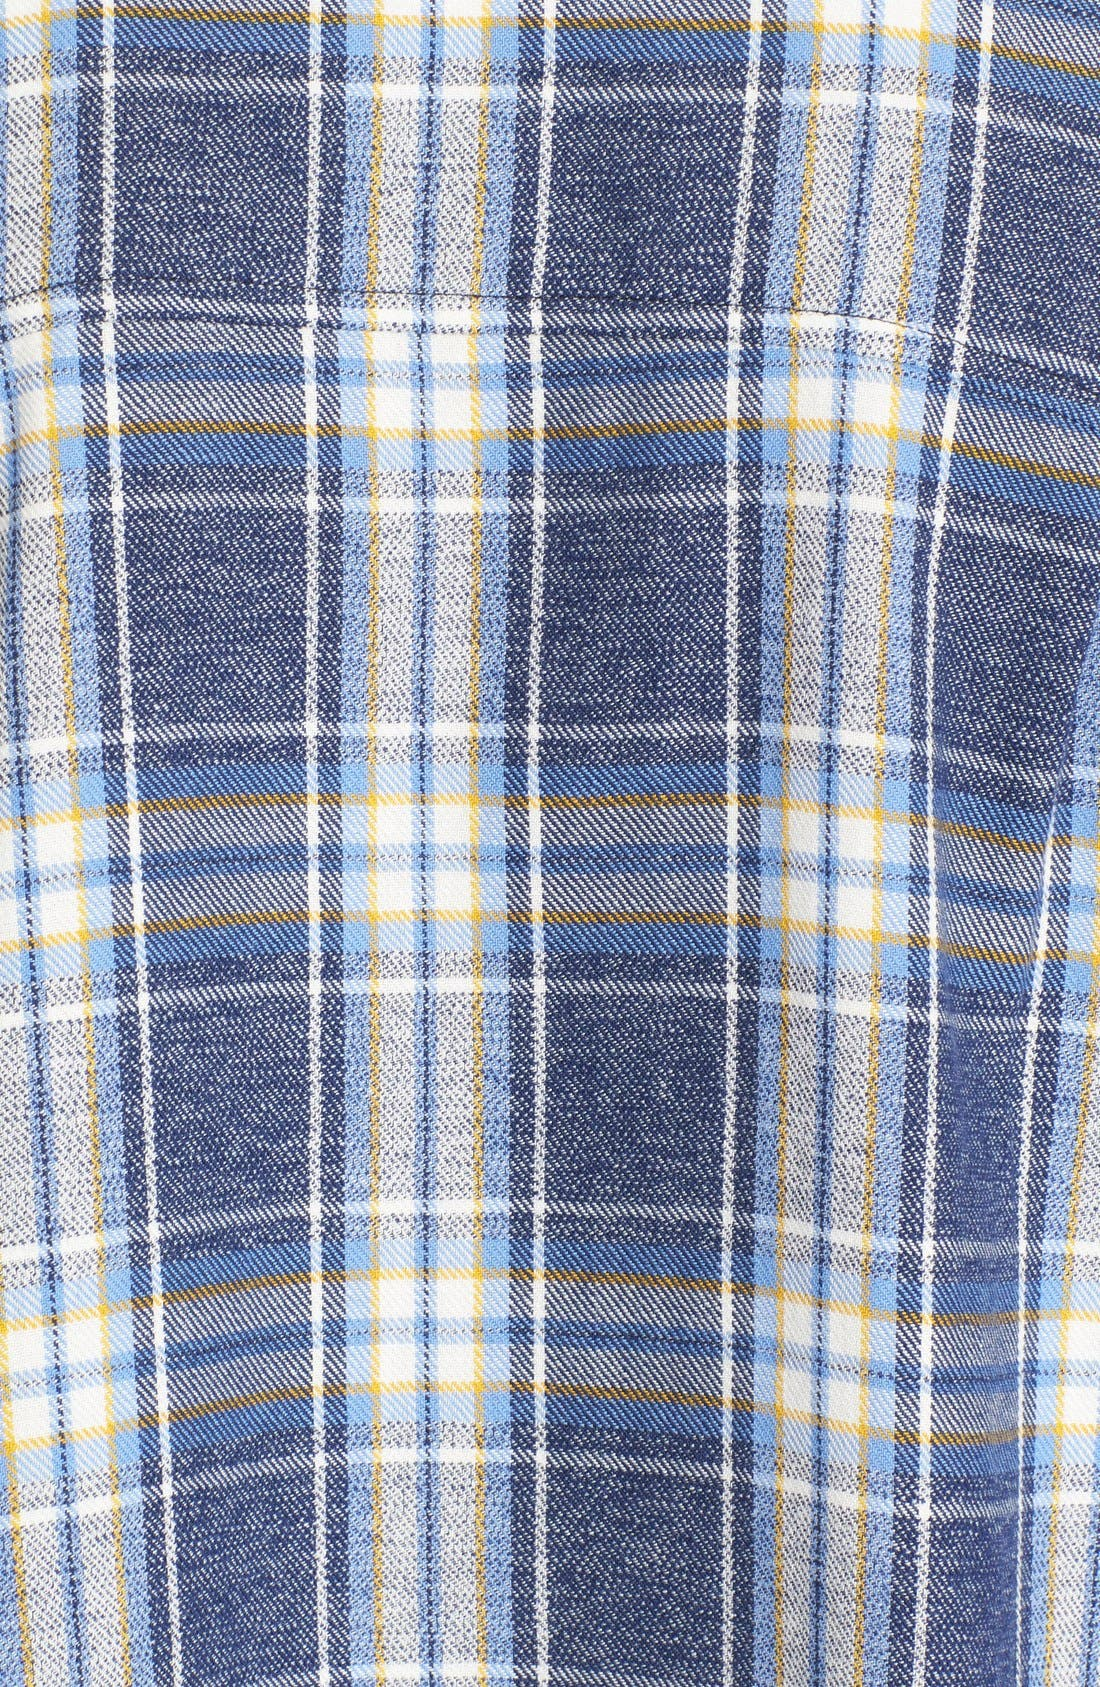 Alternate Image 5  - 6397 'Lori' Cotton Flannel Shirt